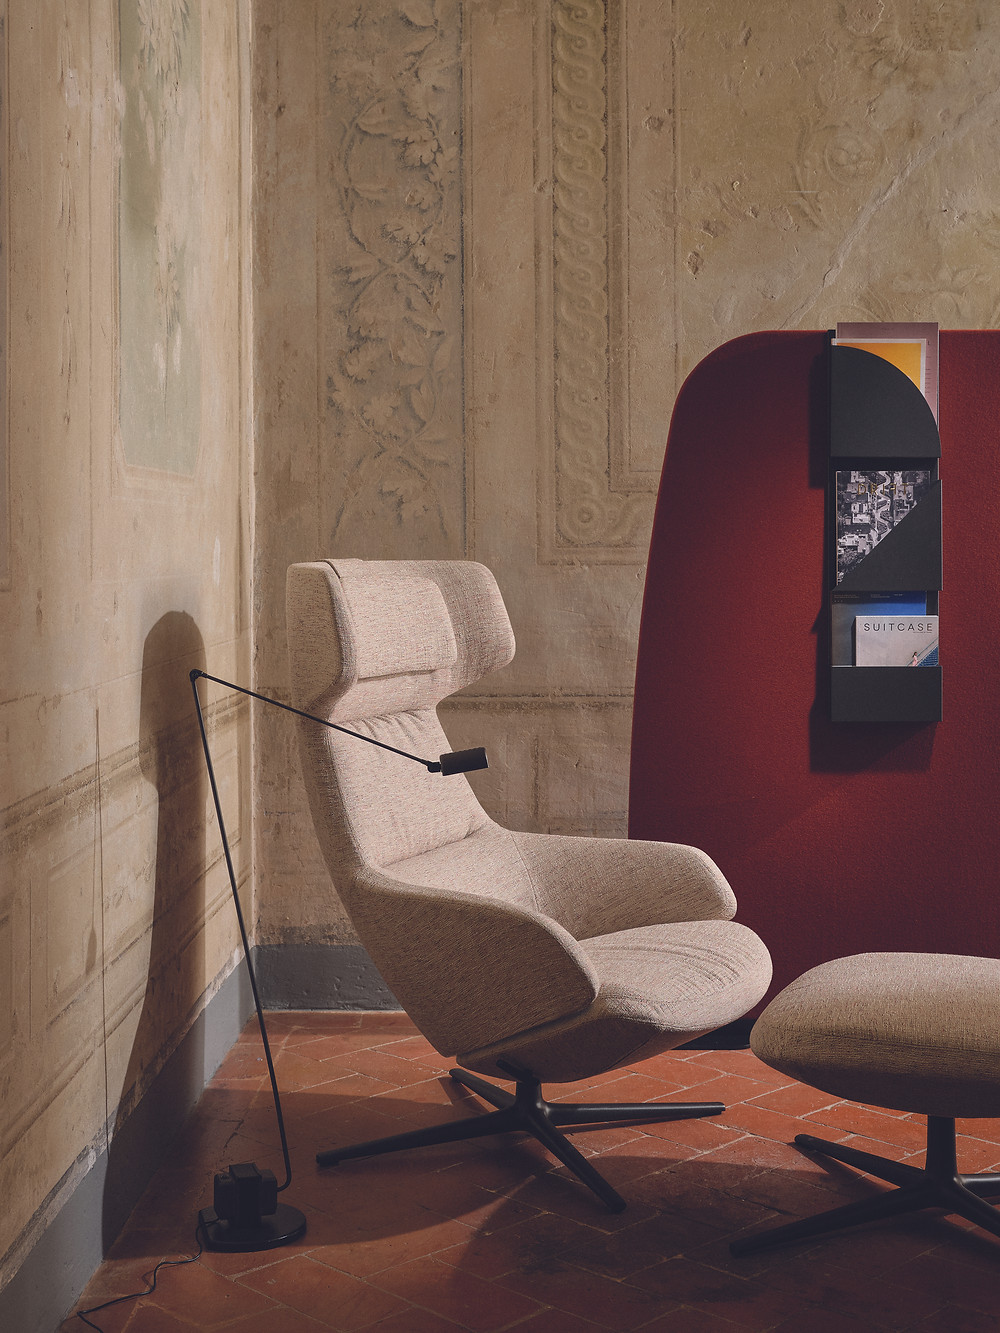 The Arper Aston Club chair upholstered in Sonar 3 fabric from Raf Simons and Kvadrat.